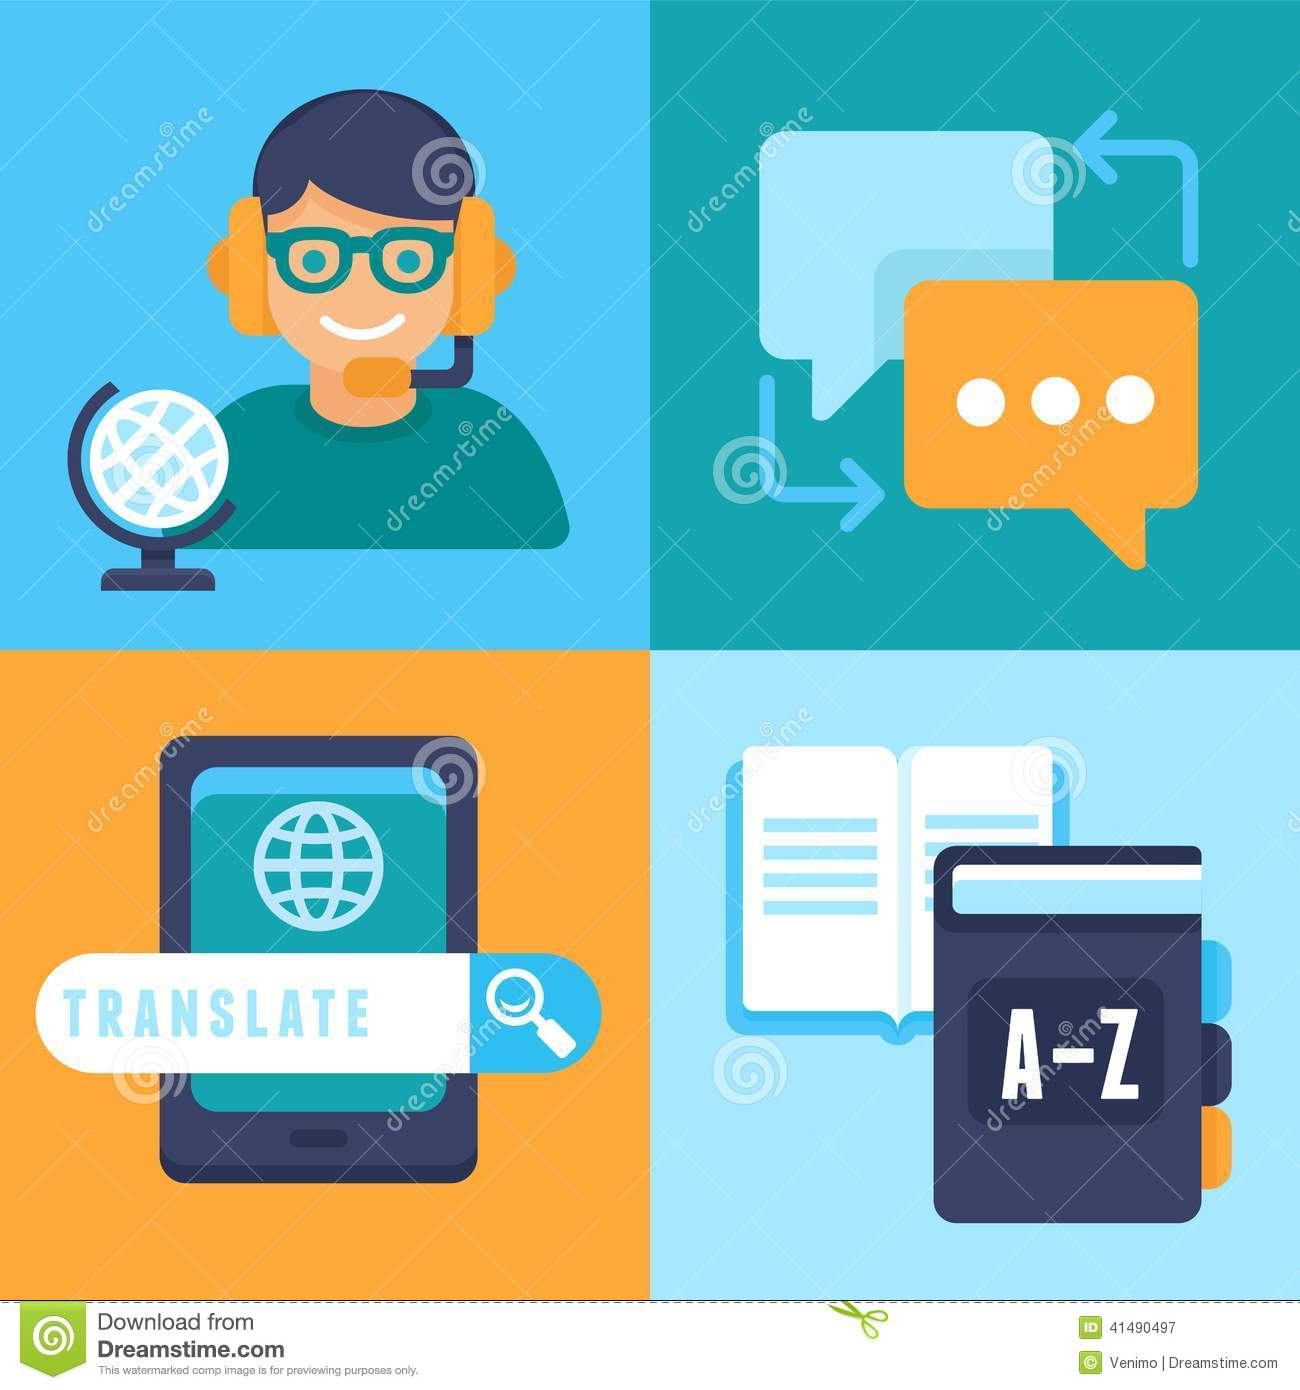 translator icon for homeschool